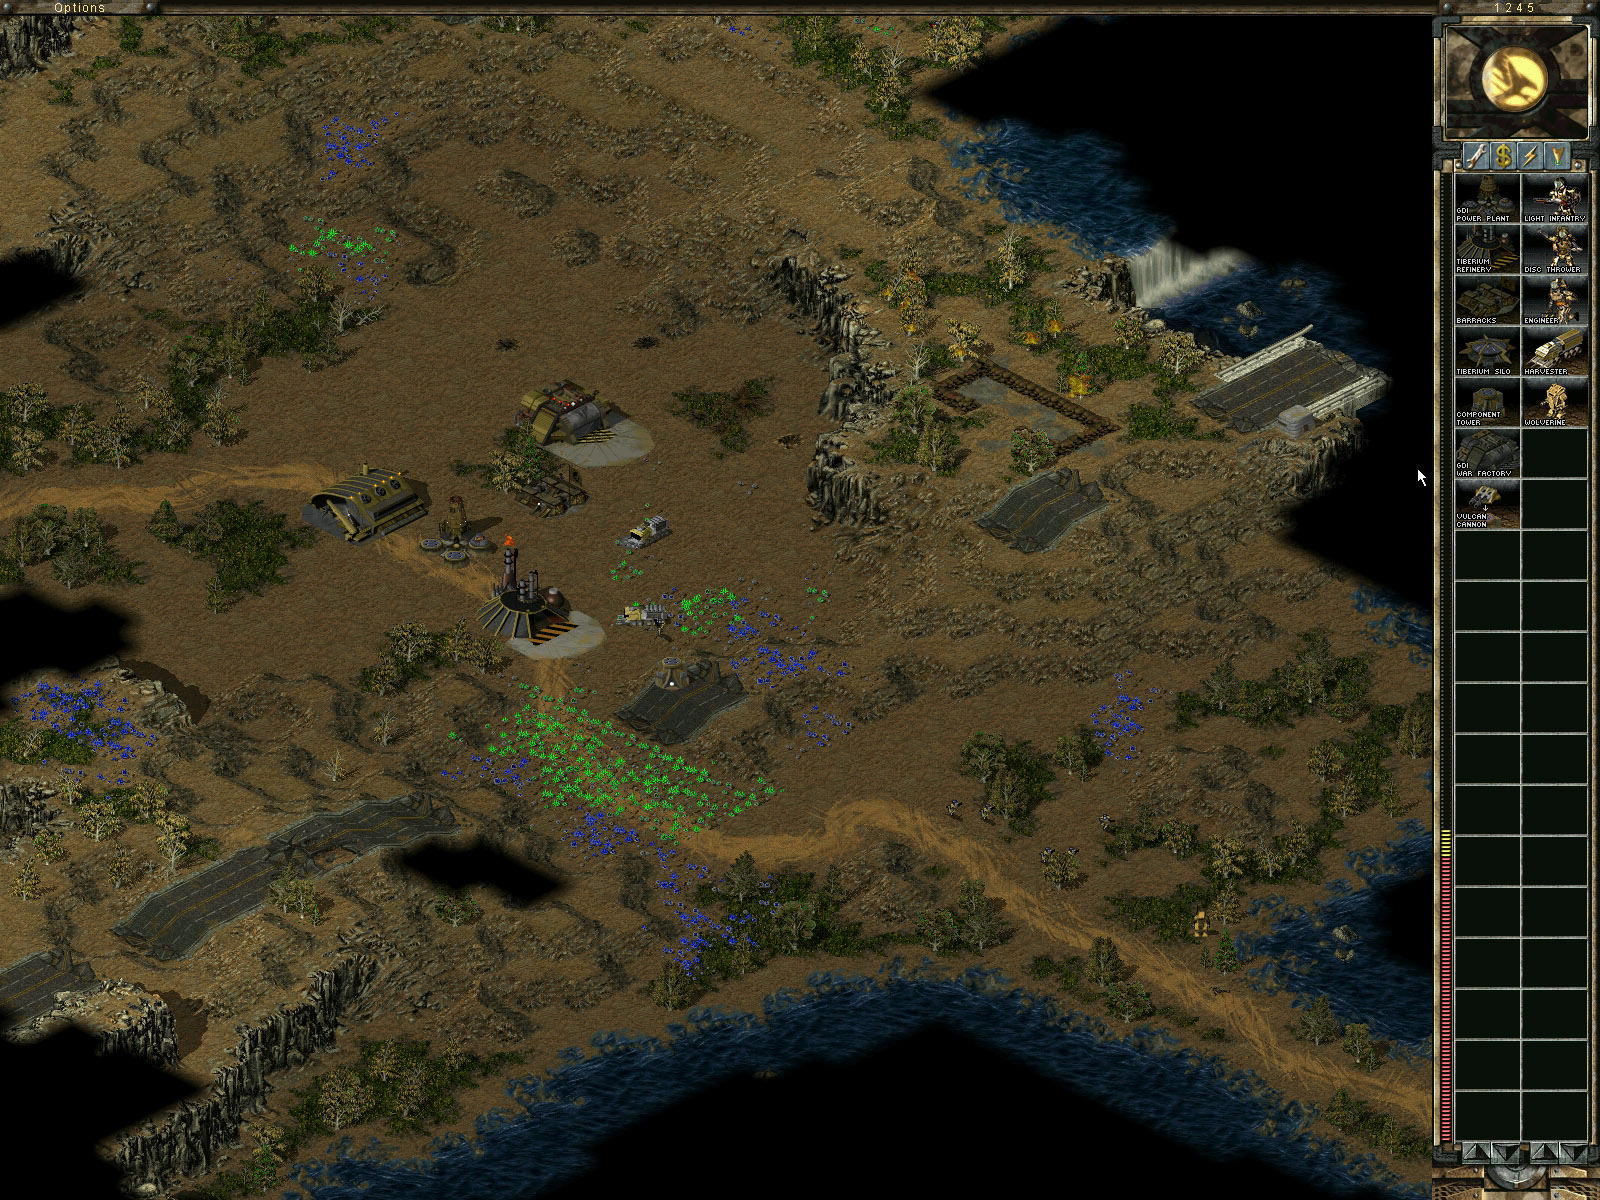 Command &amp; Conquer: Tiberian Sun<br />from https://fraxial.files.wordpress.com/2011/02/ts_06.jpg